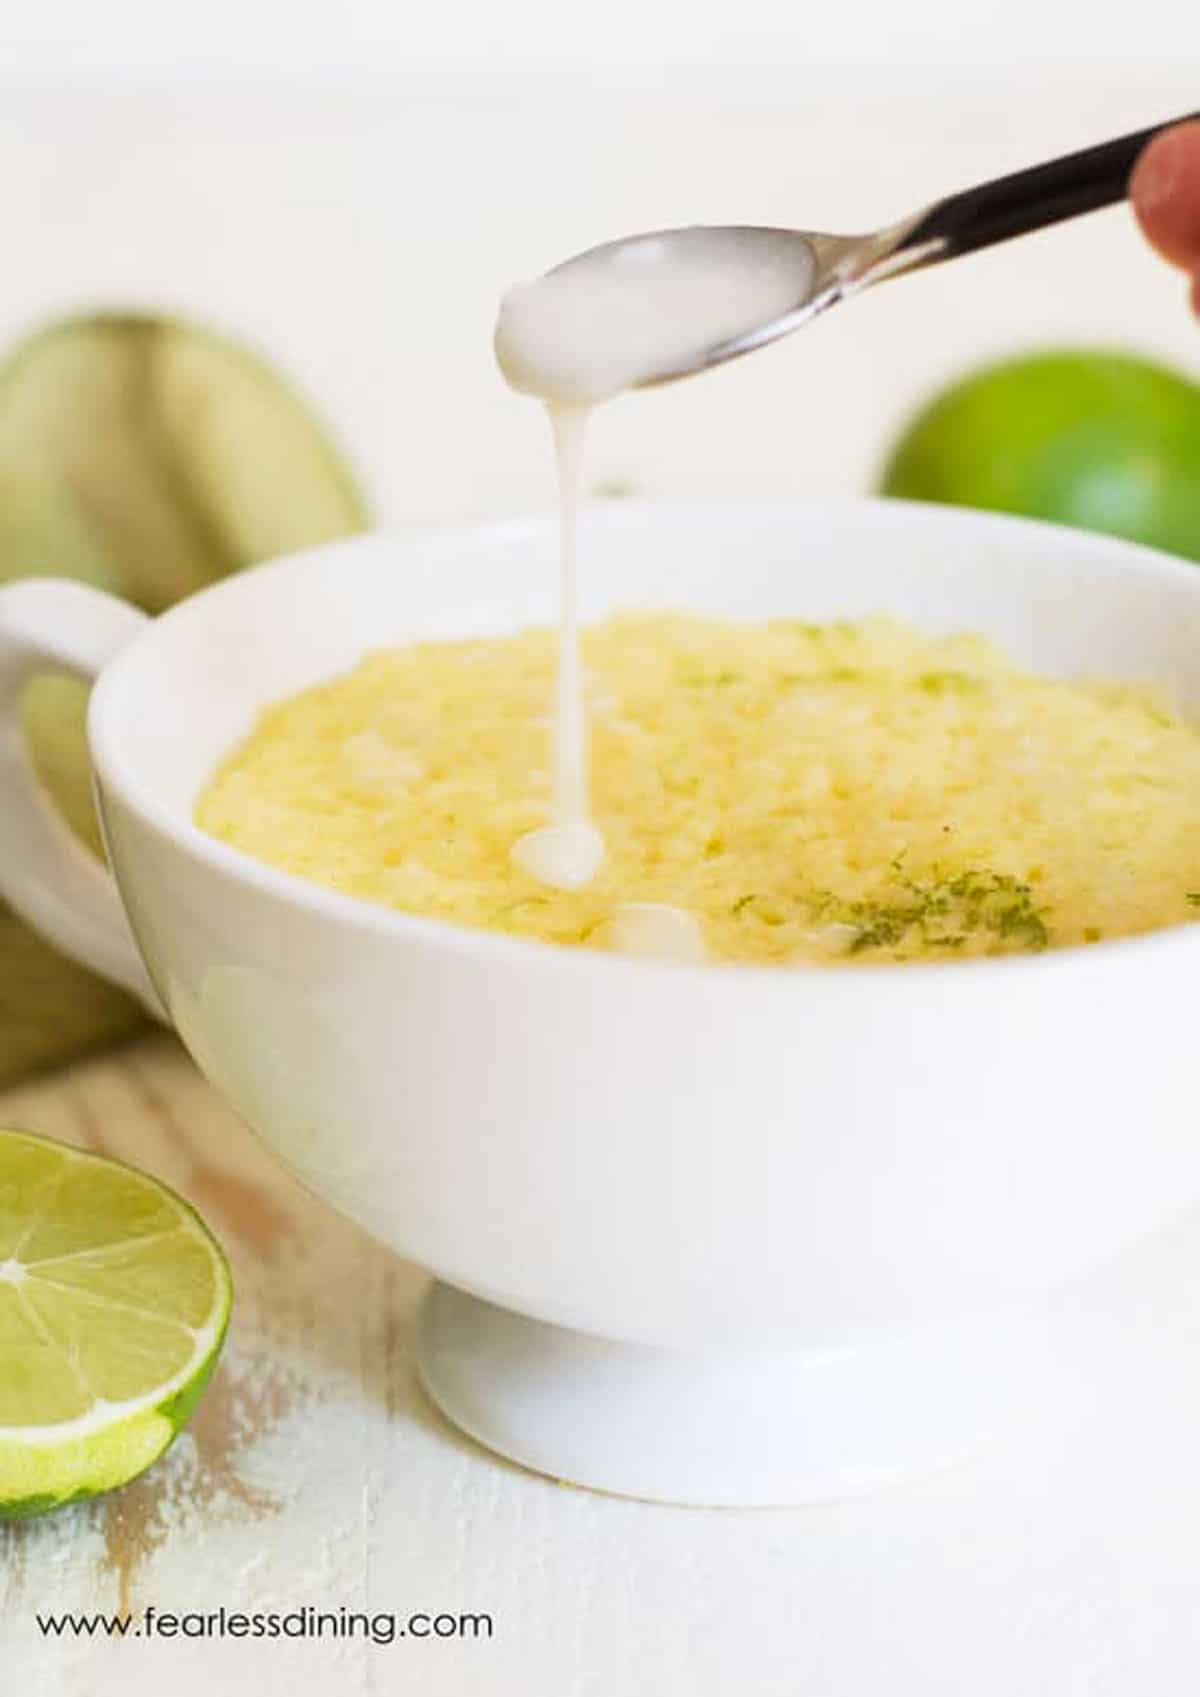 drizzling icing over a gluten free lime mug cake